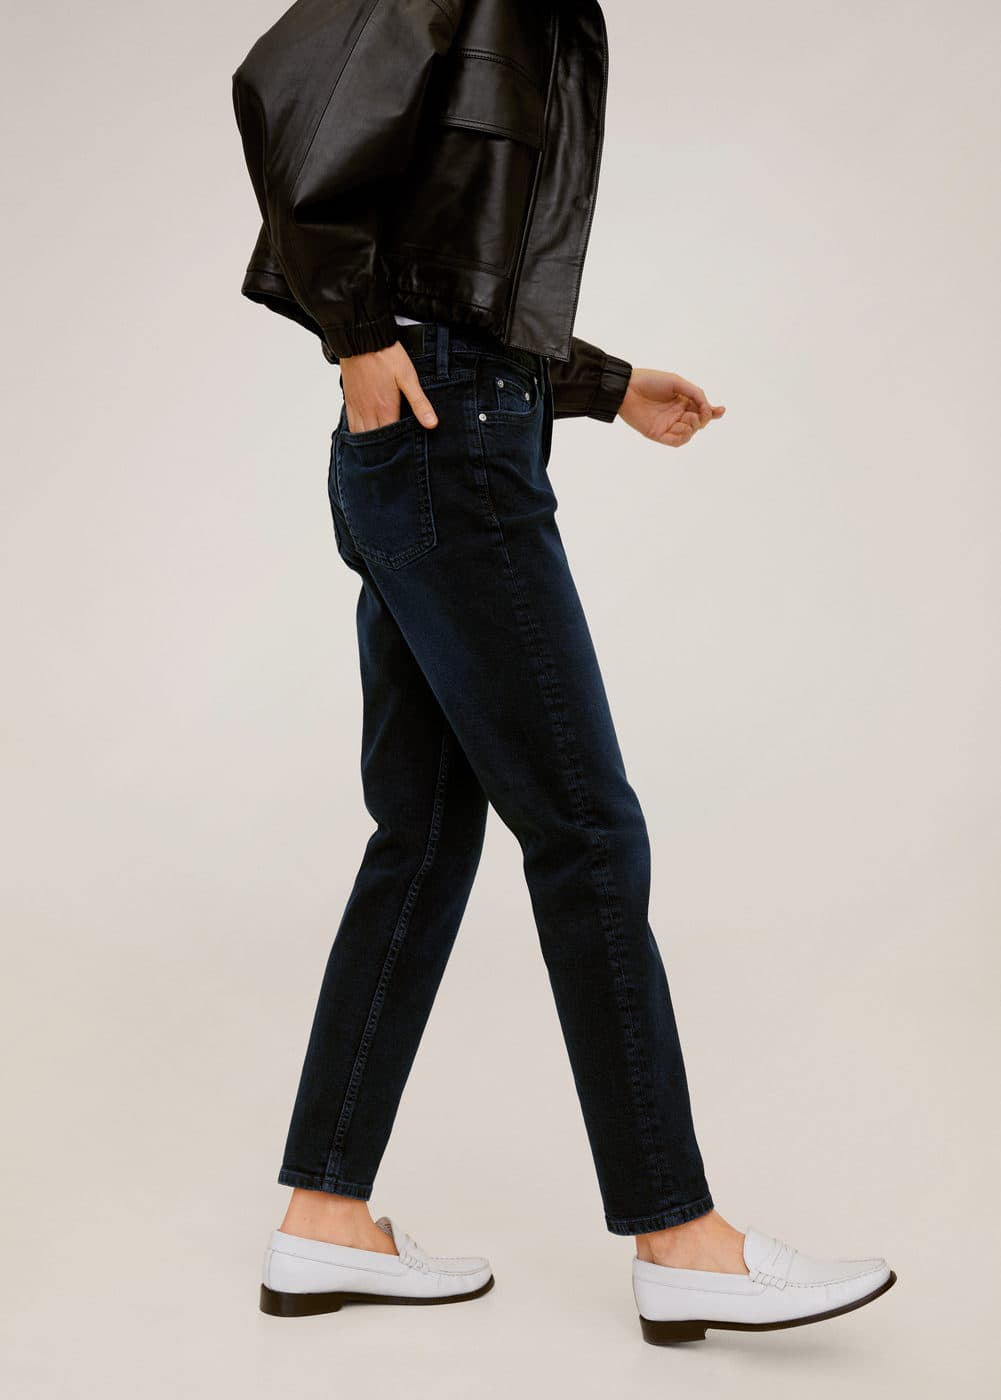 m-relax:jeans slim-fit